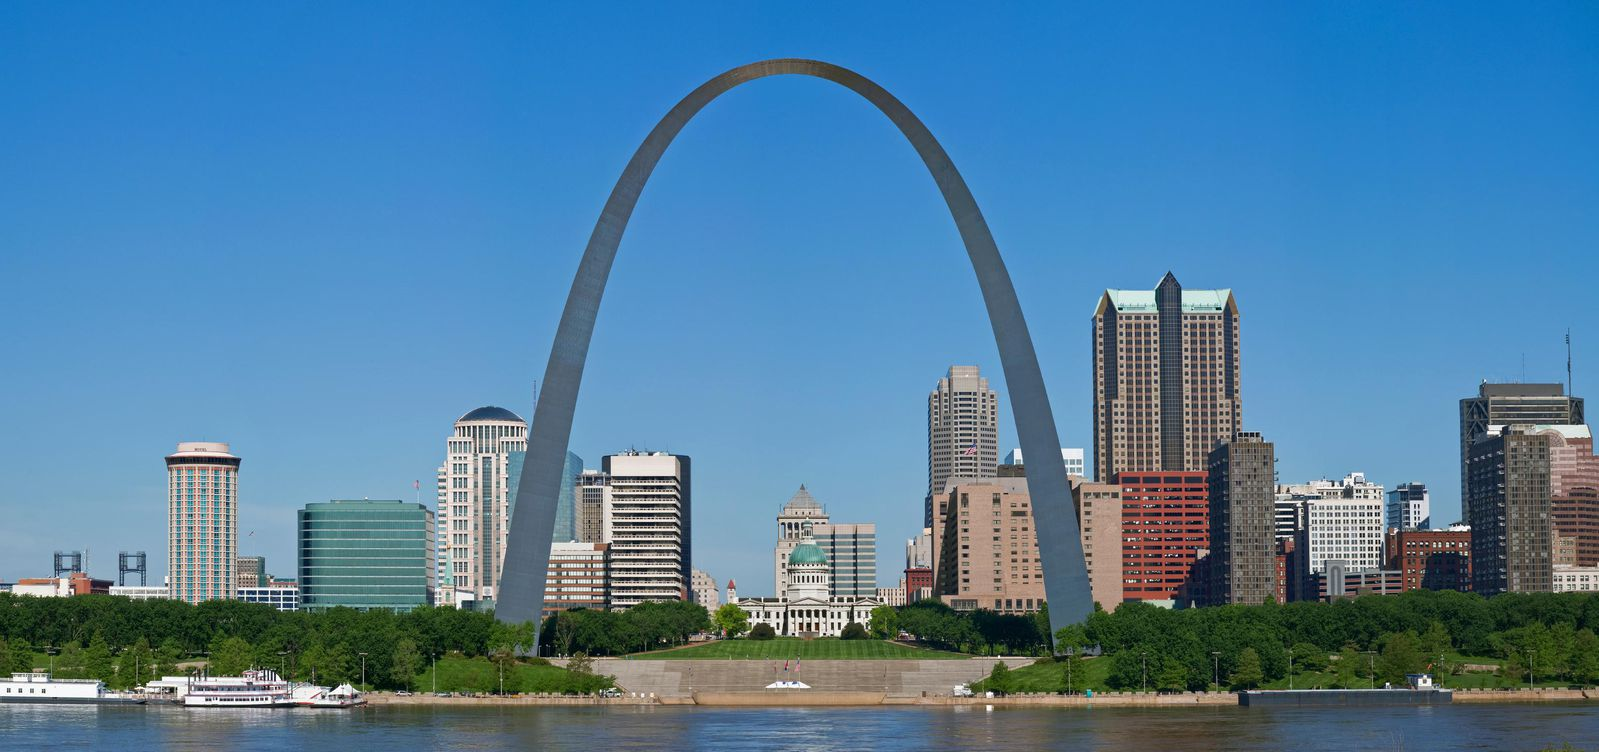 The Gateway Arch St. Louis Missiouri